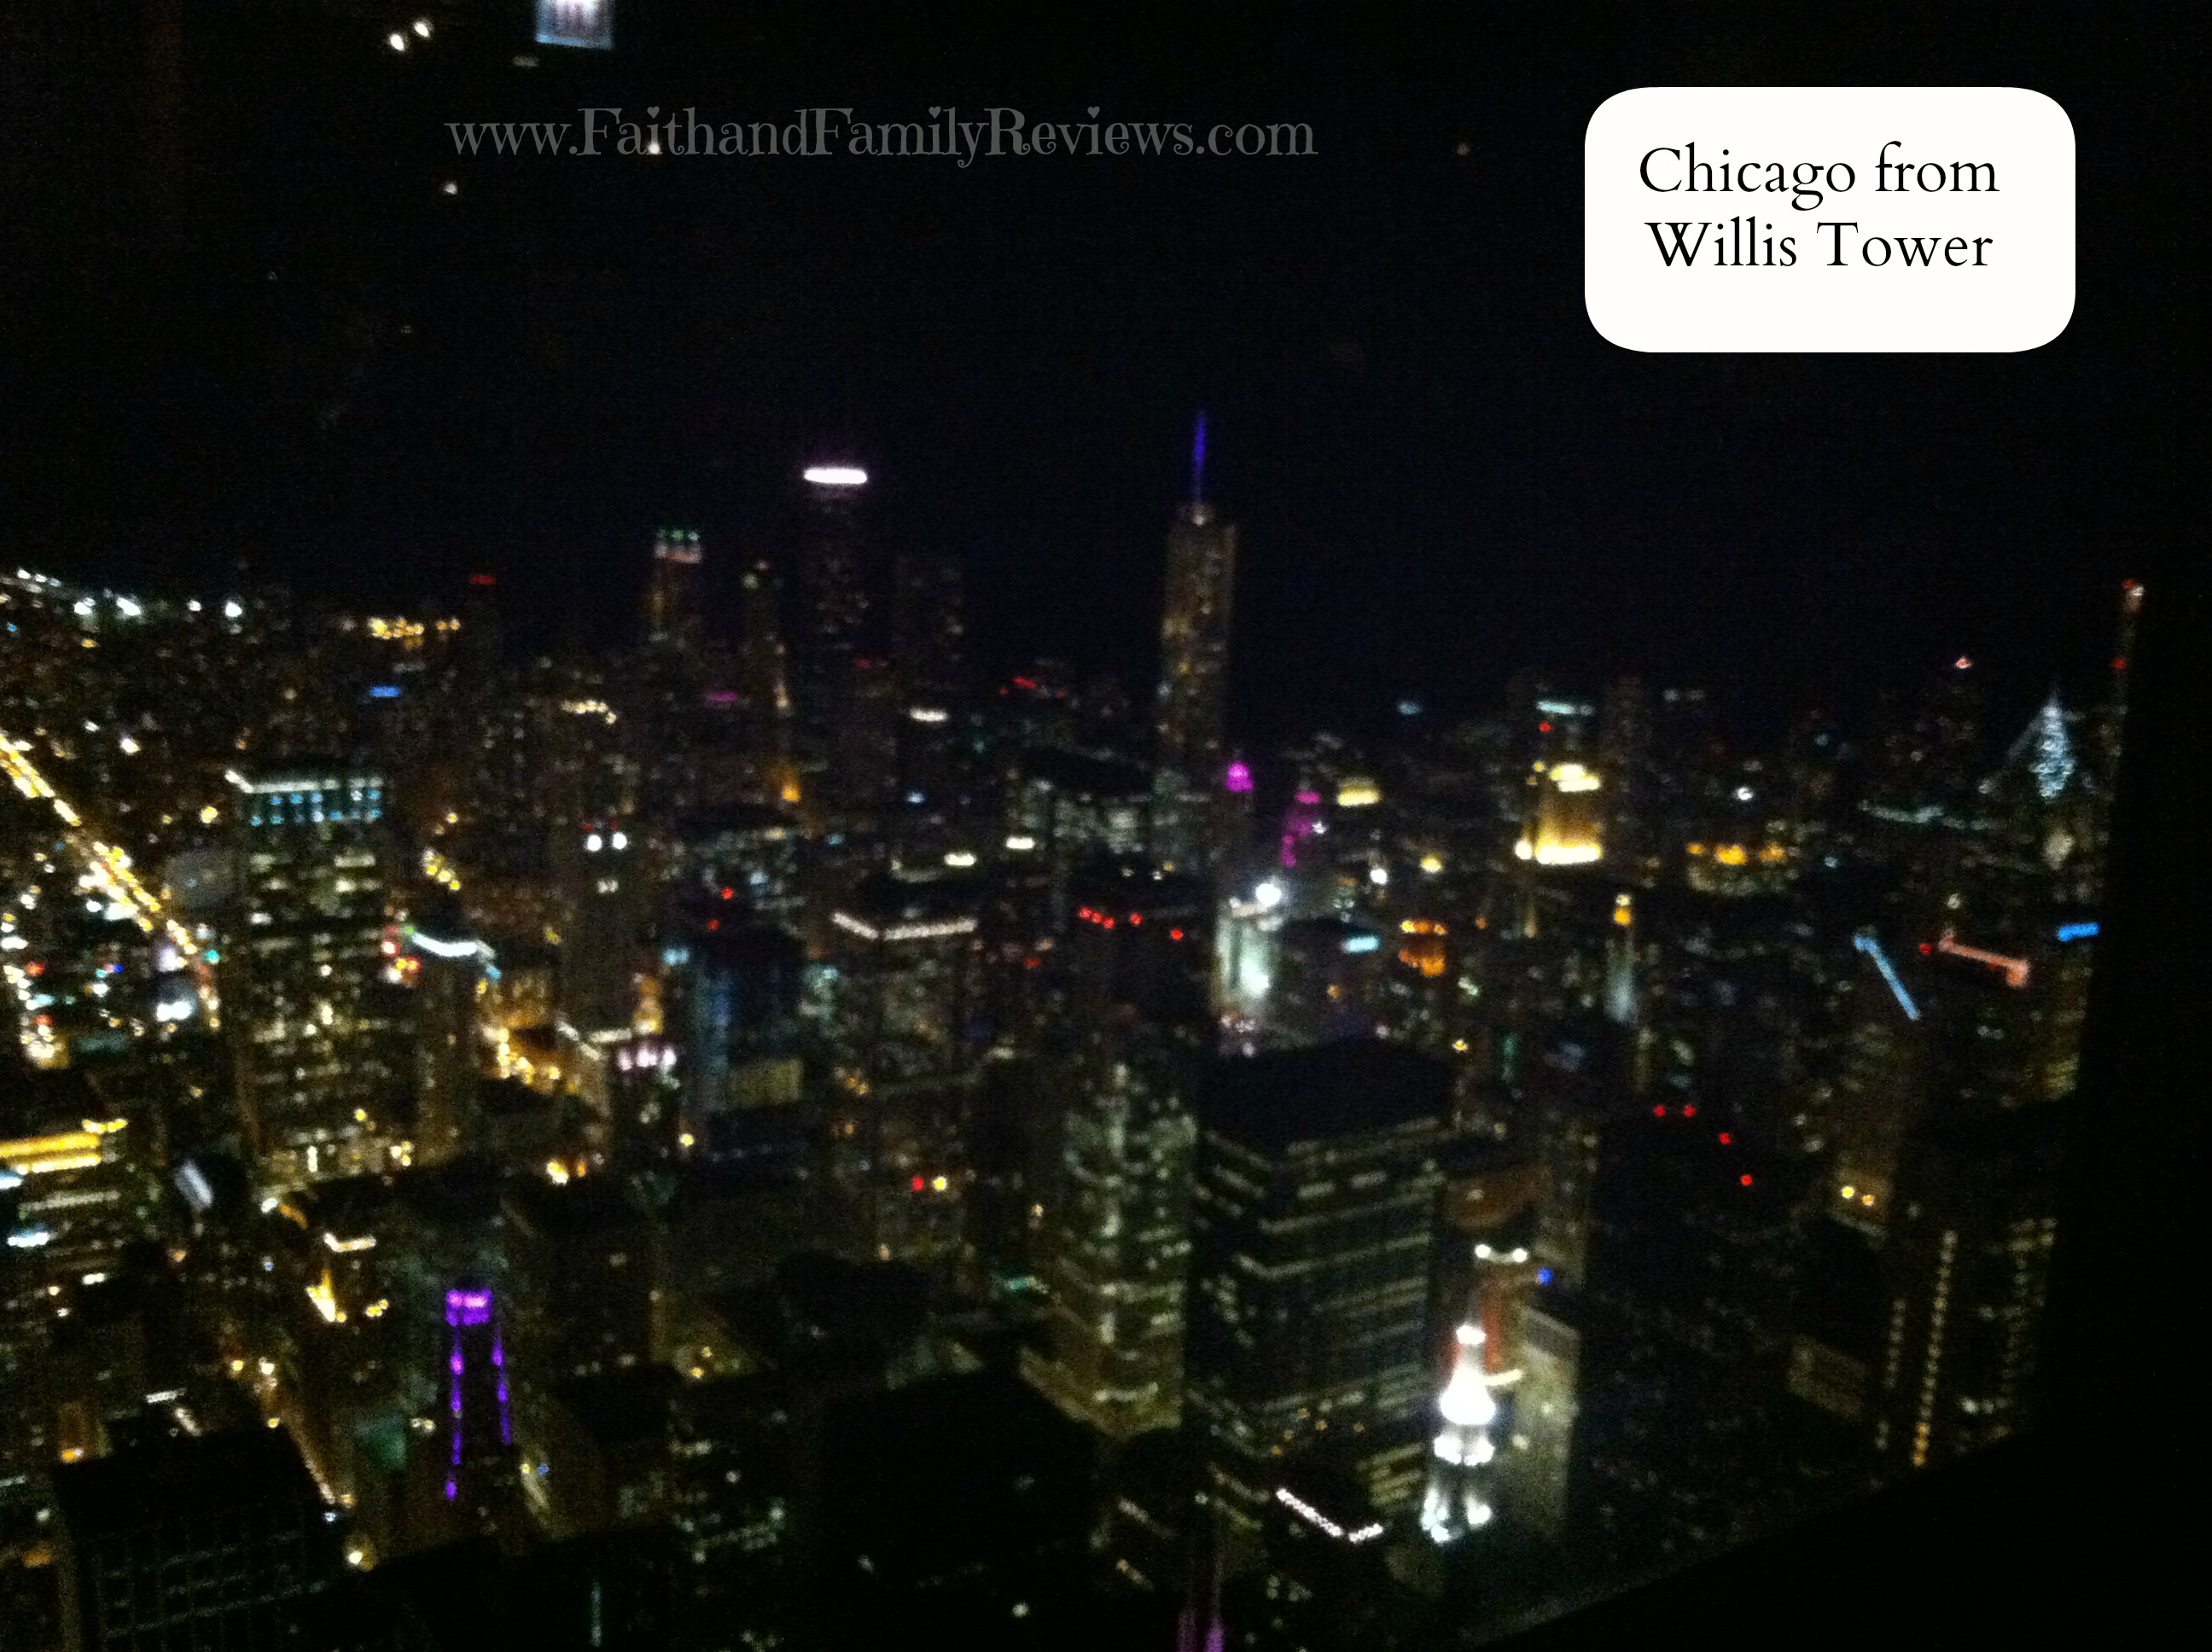 FFR Chicago at night from Willis Tower